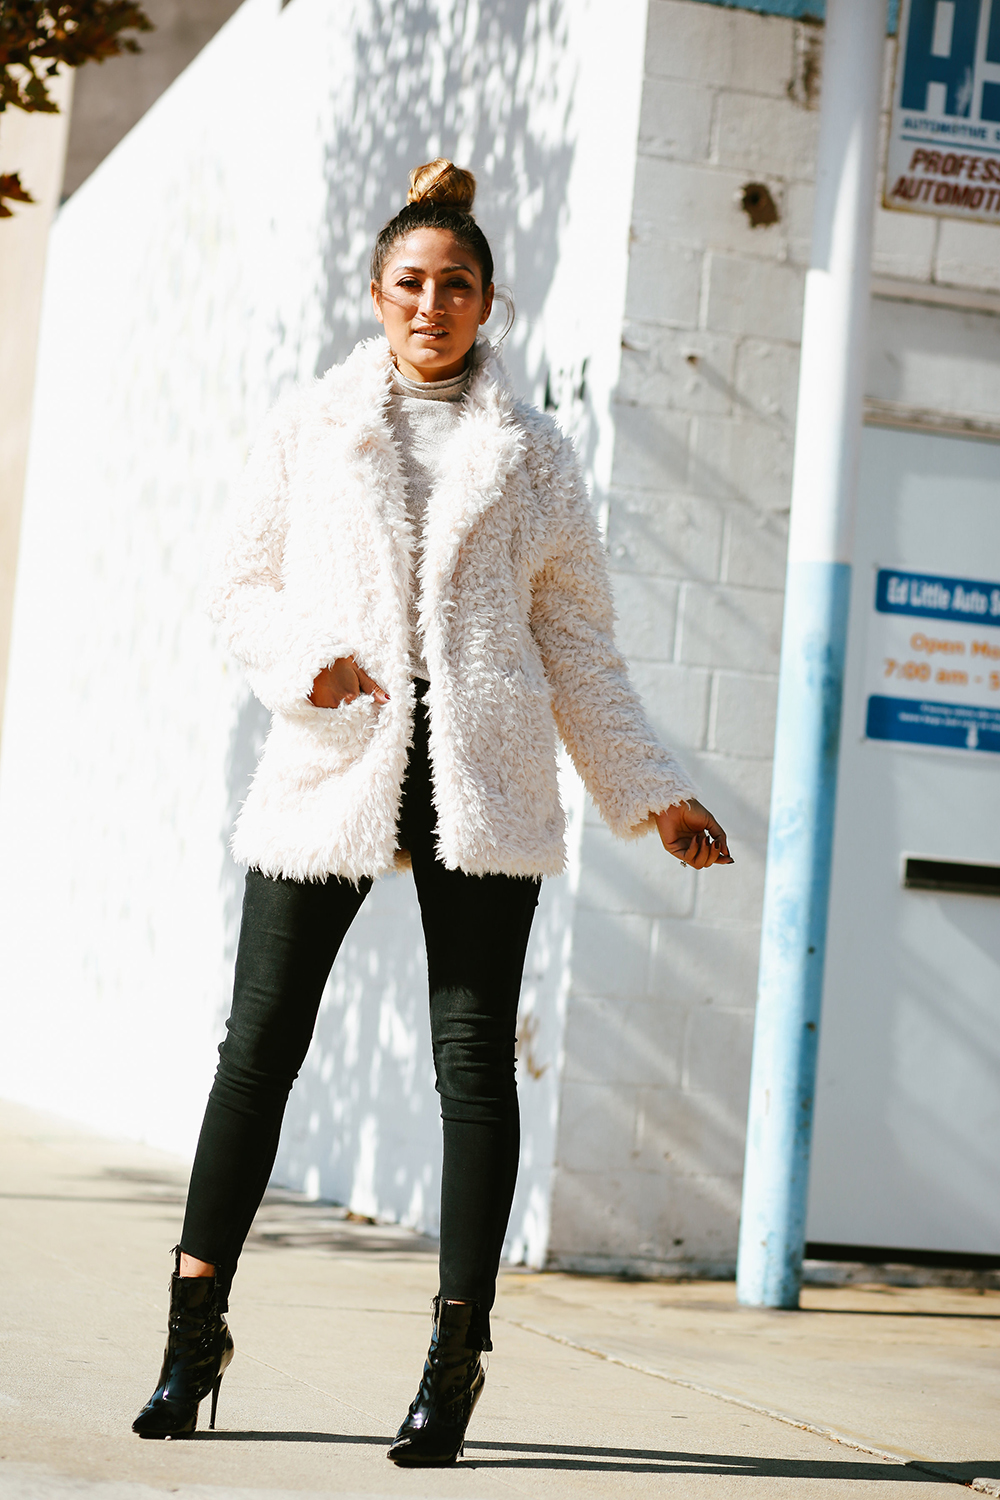 Cyber Monday Sales, sales, cyber monday, deals, discounts, thanksgiving sales, monday sales, black friday sales, melrodstyle, ootd, streetstyle, kendall and kylie faux fur coat, lucky brand jeans, latina blogger, hispanic blogger, mexican blogger, la blogger, whittier blogger,